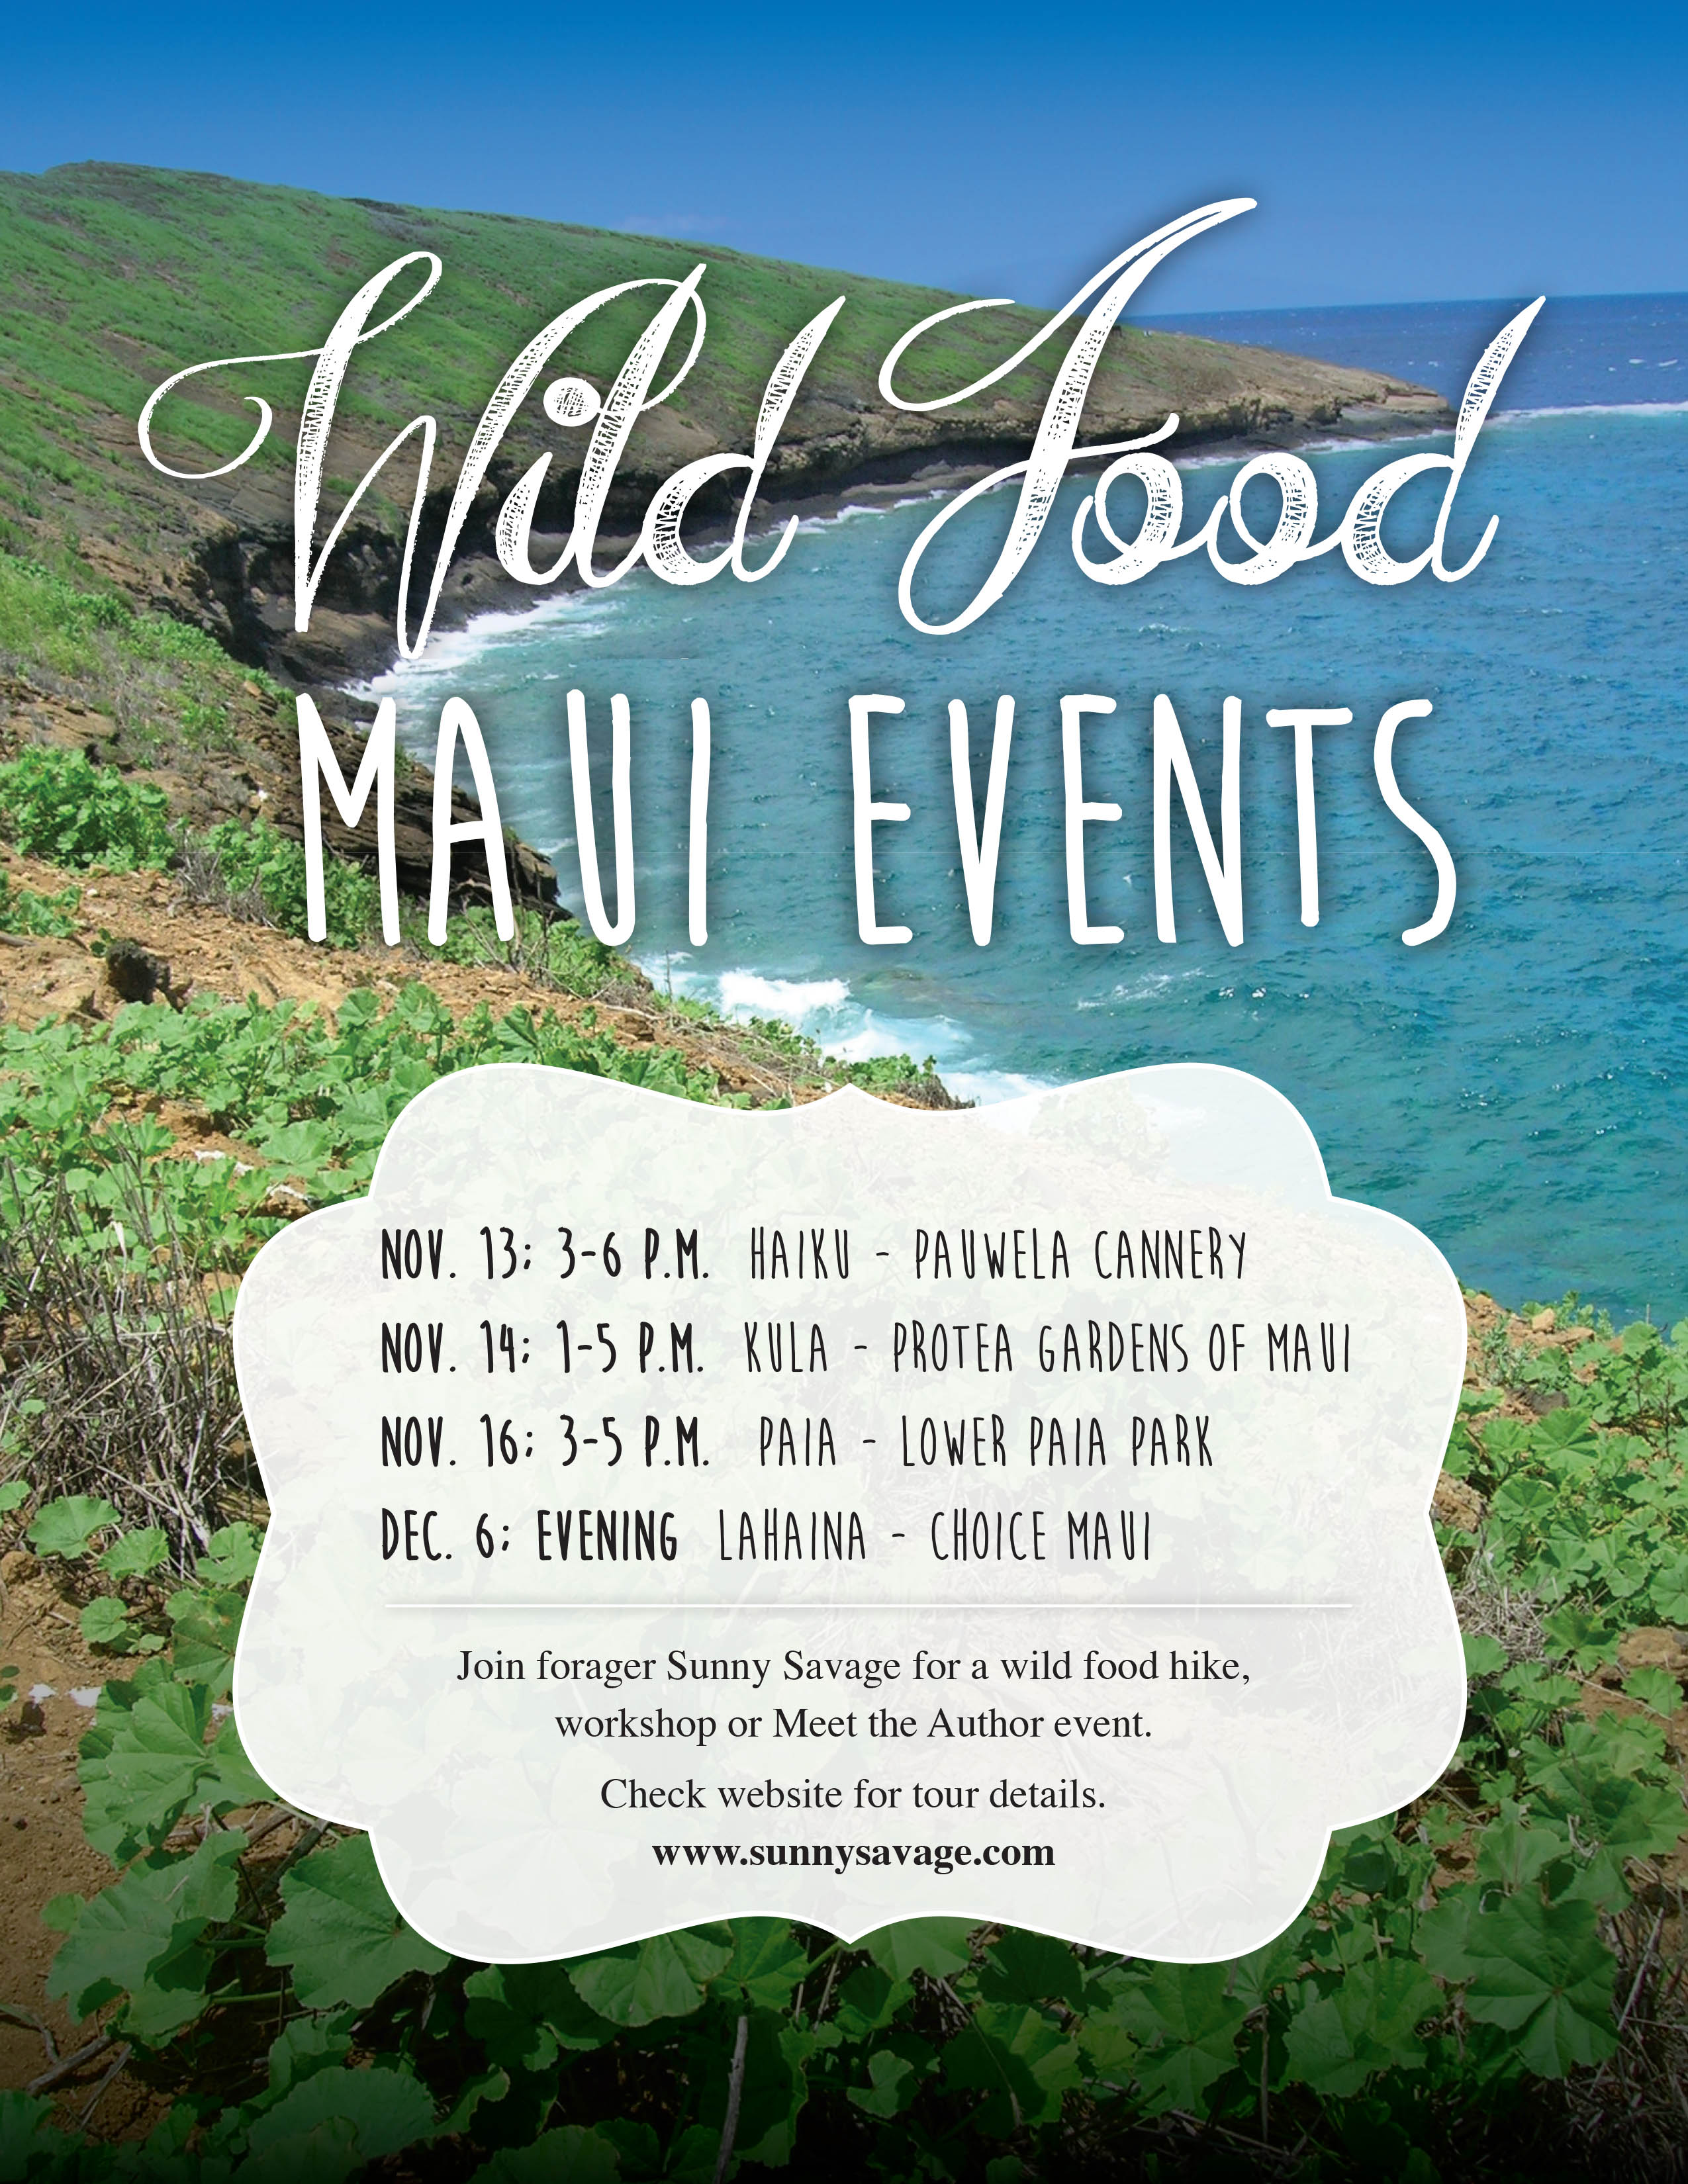 Maui Events one wild food every day tour